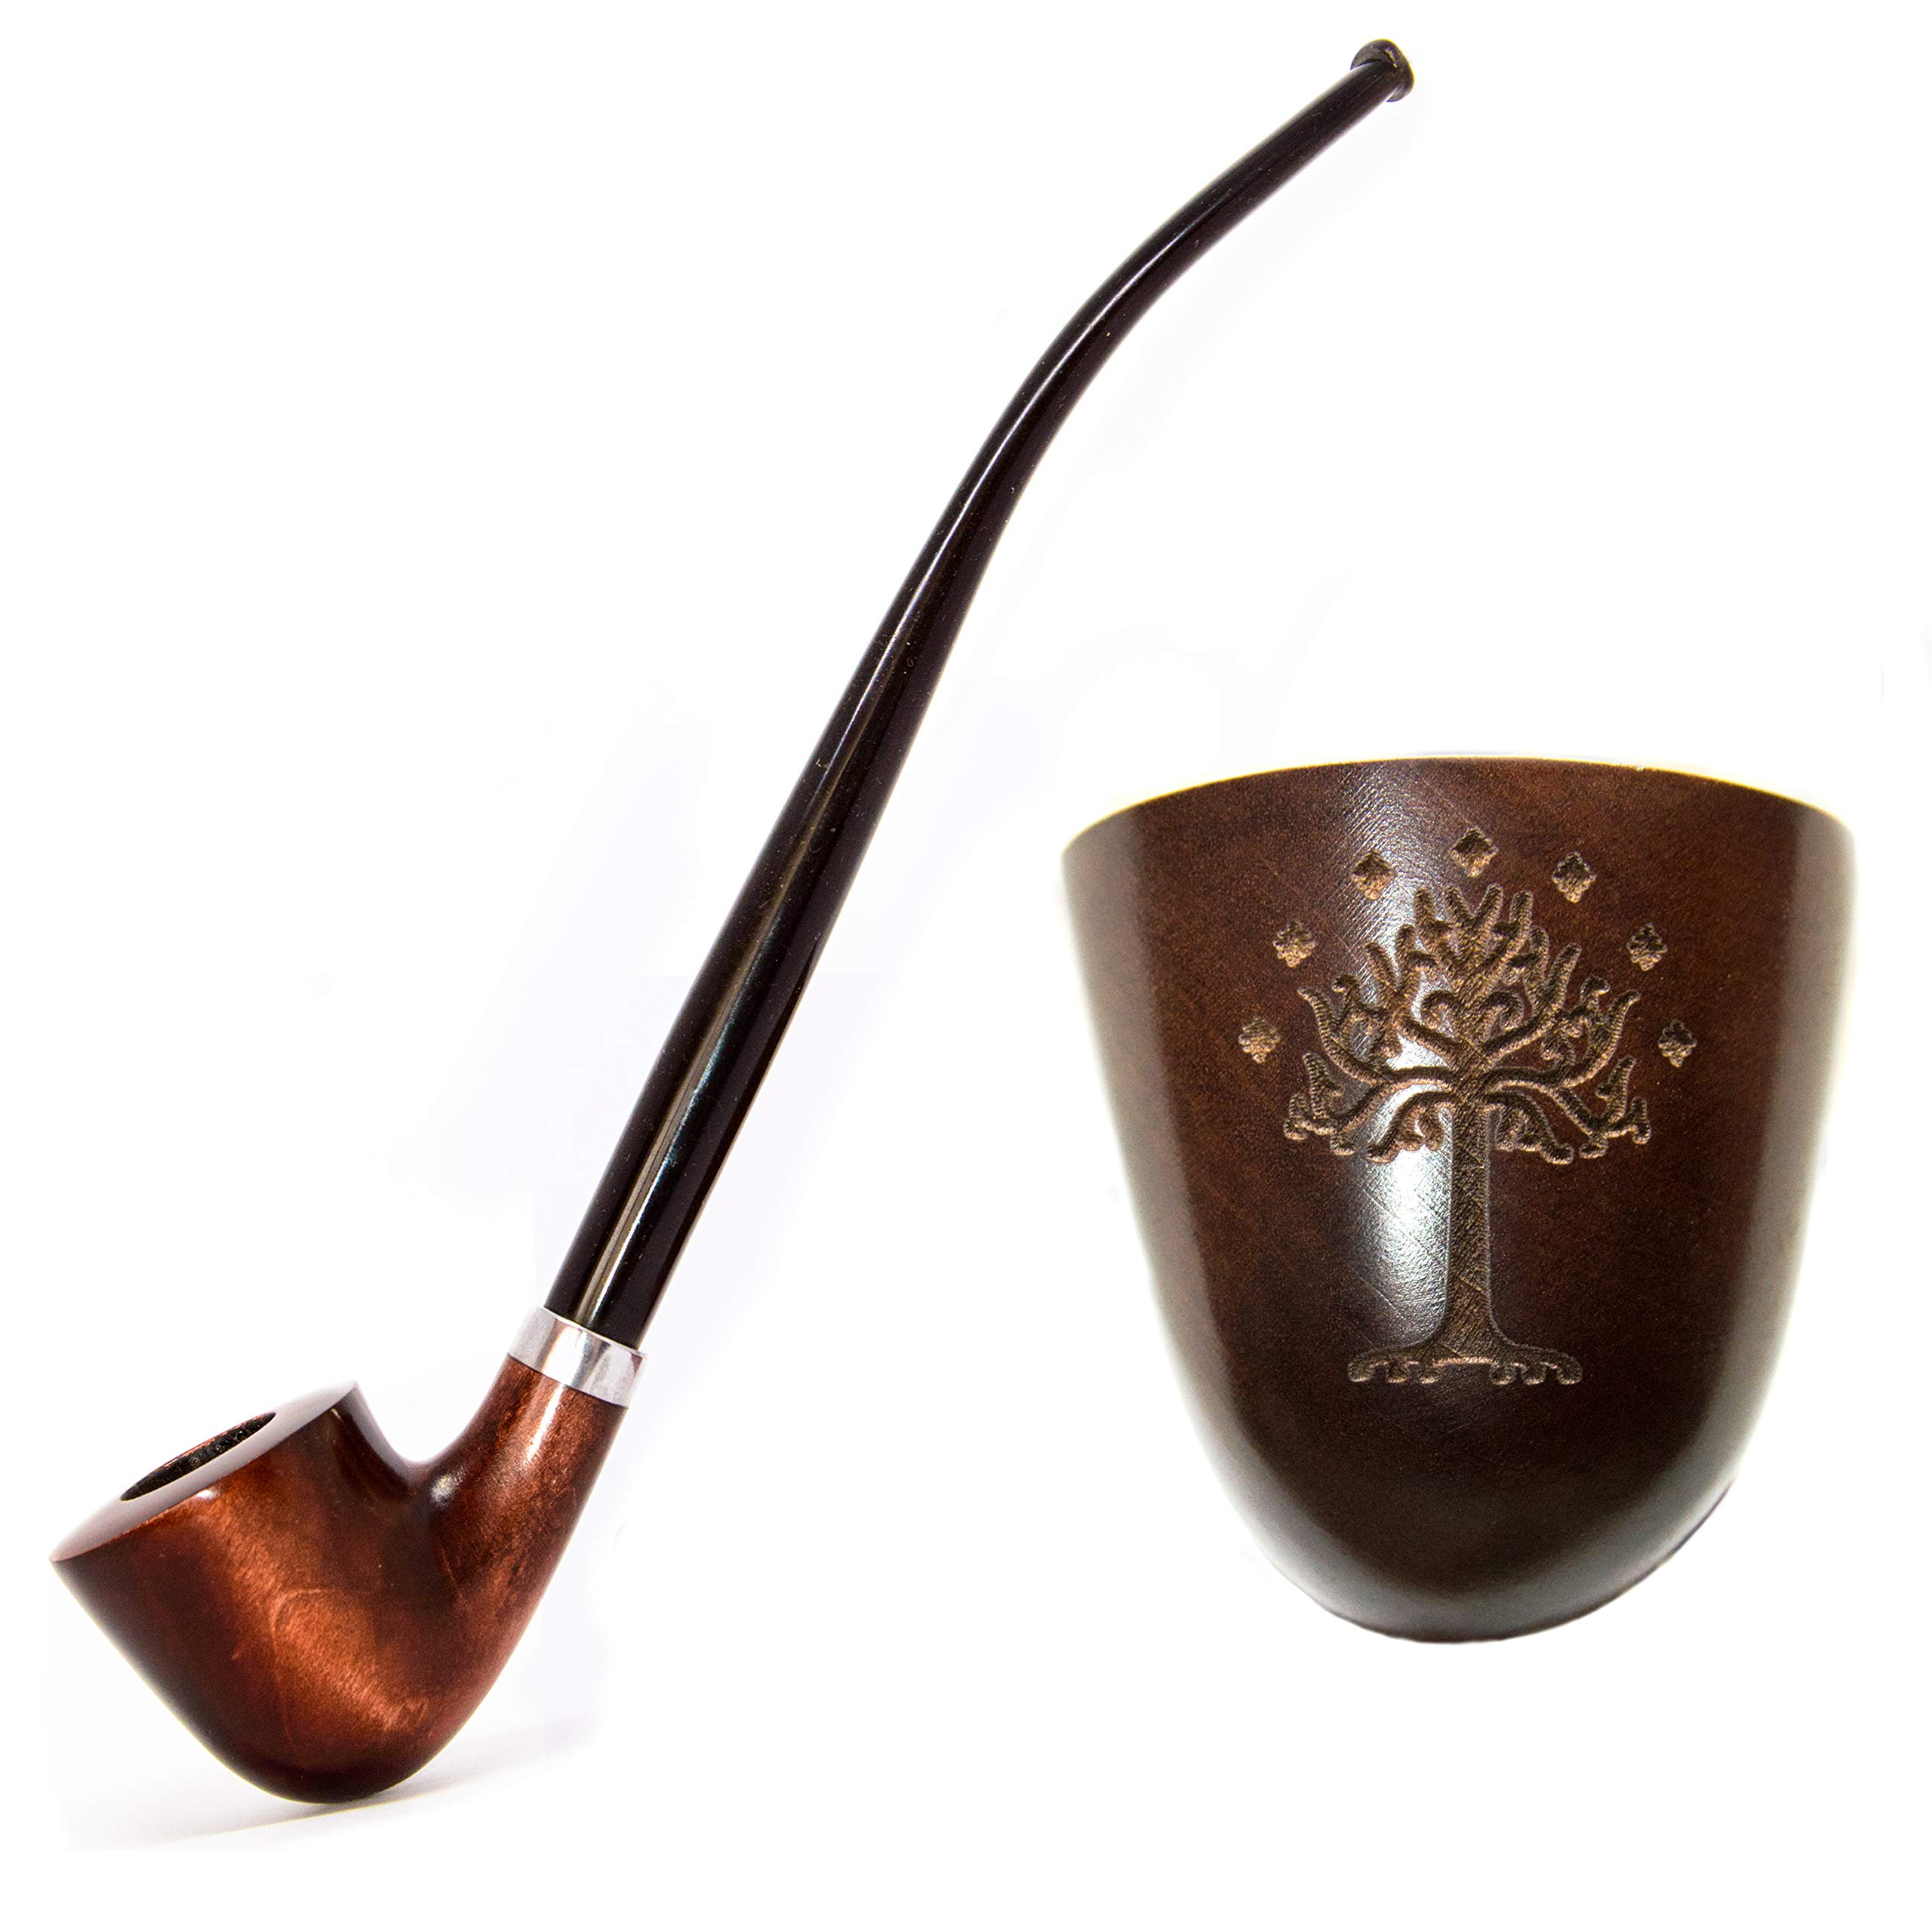 KAFpipeWorkshop Tobacco pipe Gandalf pipe Wooden pipe Tobacco Smoking pipe Lord of the Rings pipe Churchwarden pipe ''Tree of Gondor'' by KAFpipeWorkshop